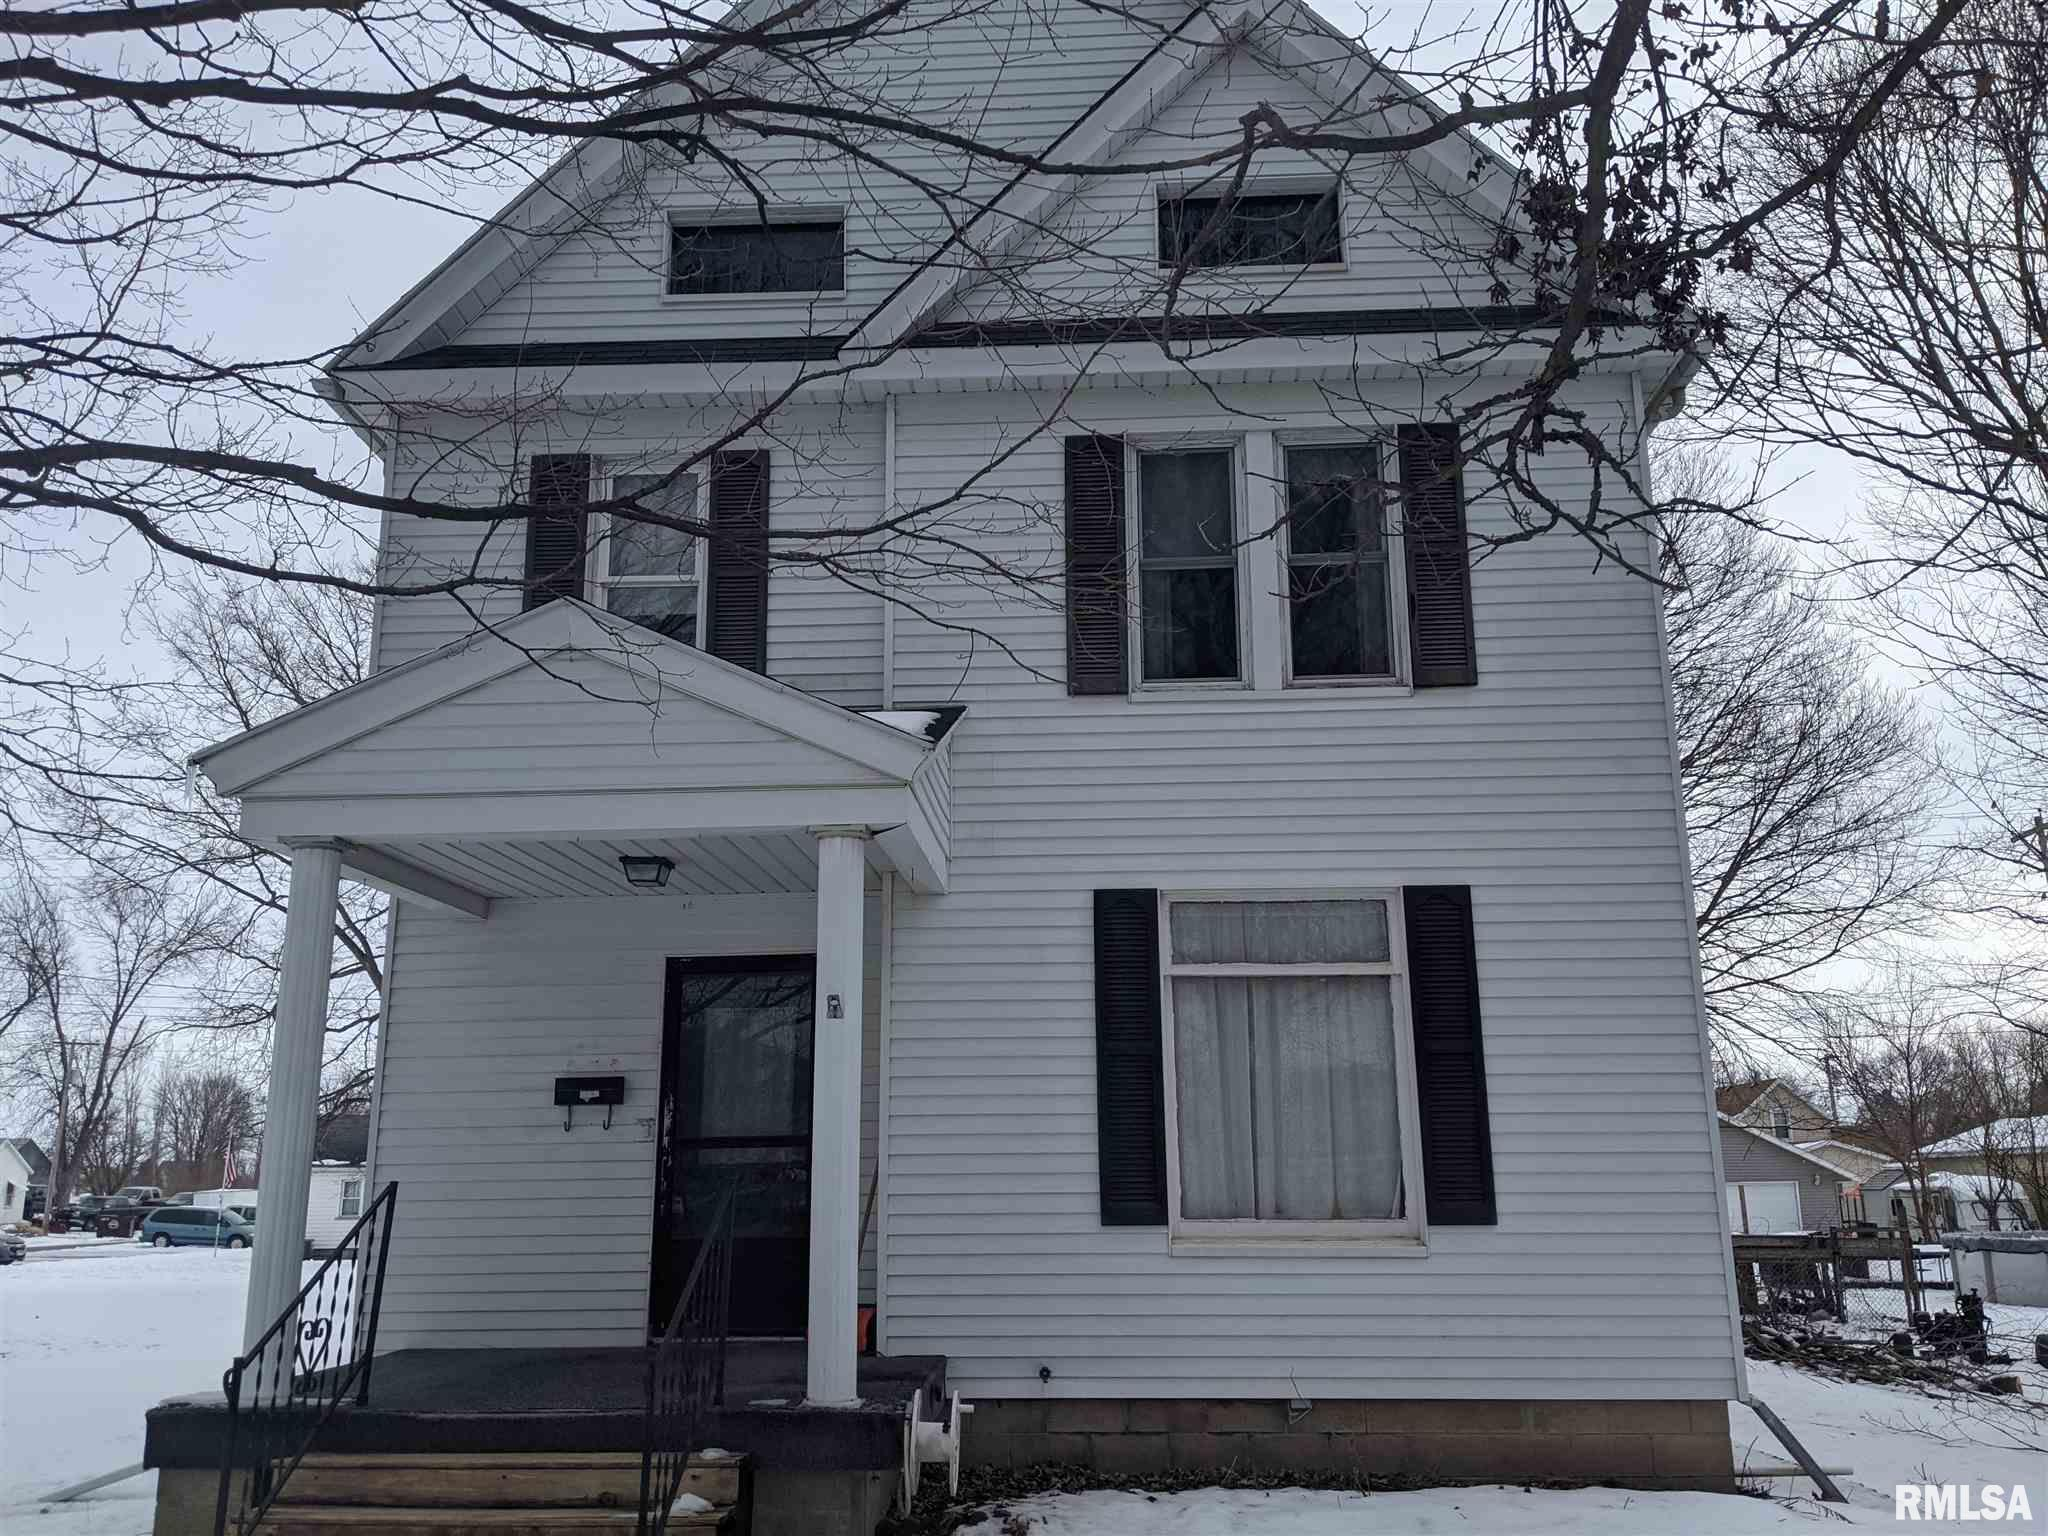 521 N GALENA Property Photo - Wyoming, IL real estate listing